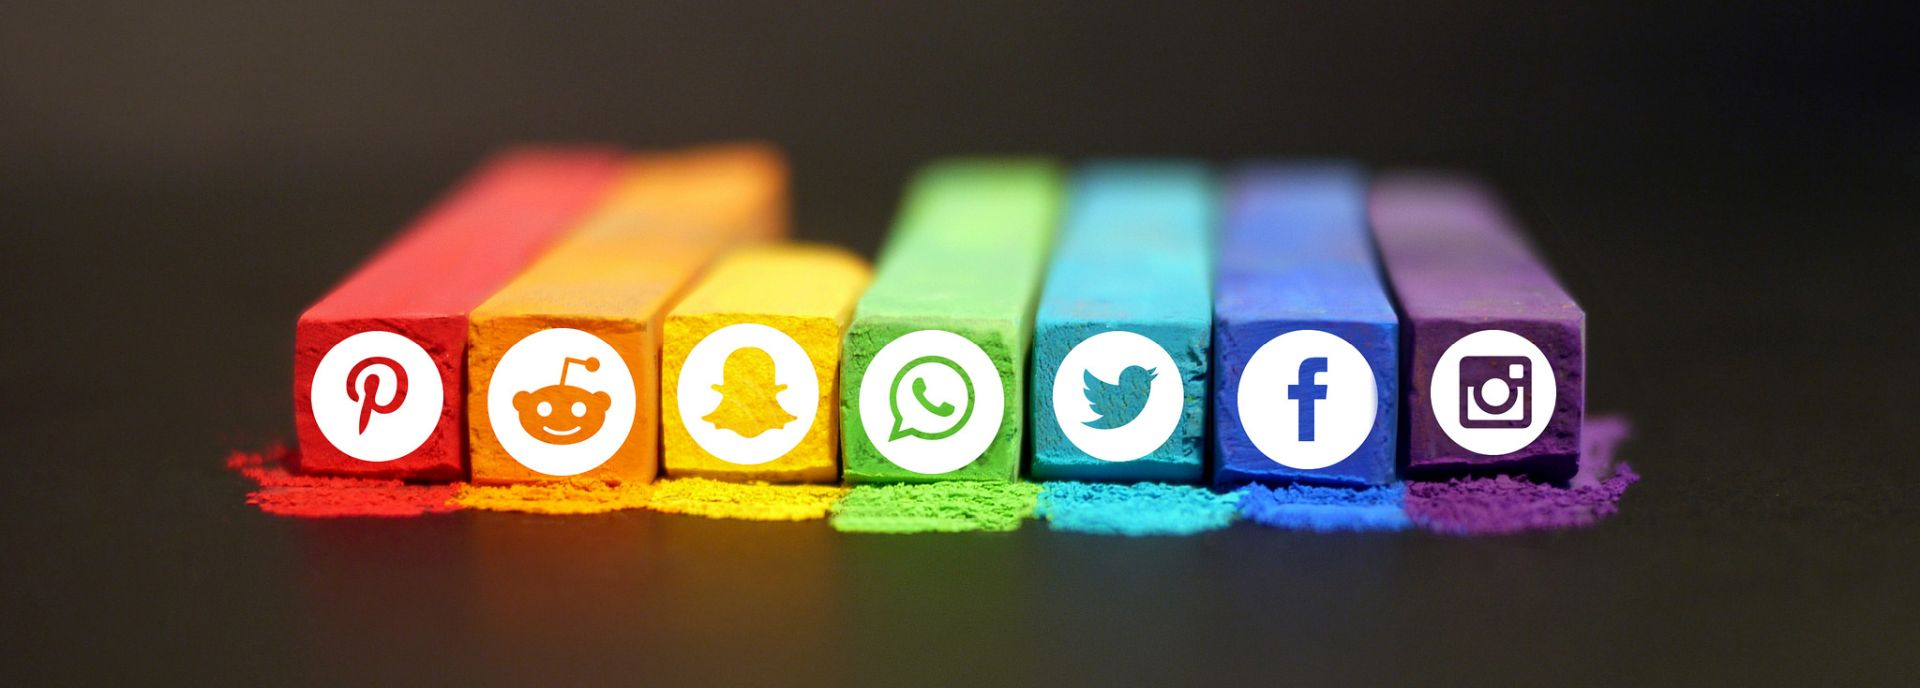 Social Media, Privacy, and Responsibility - Let the Journey Begin